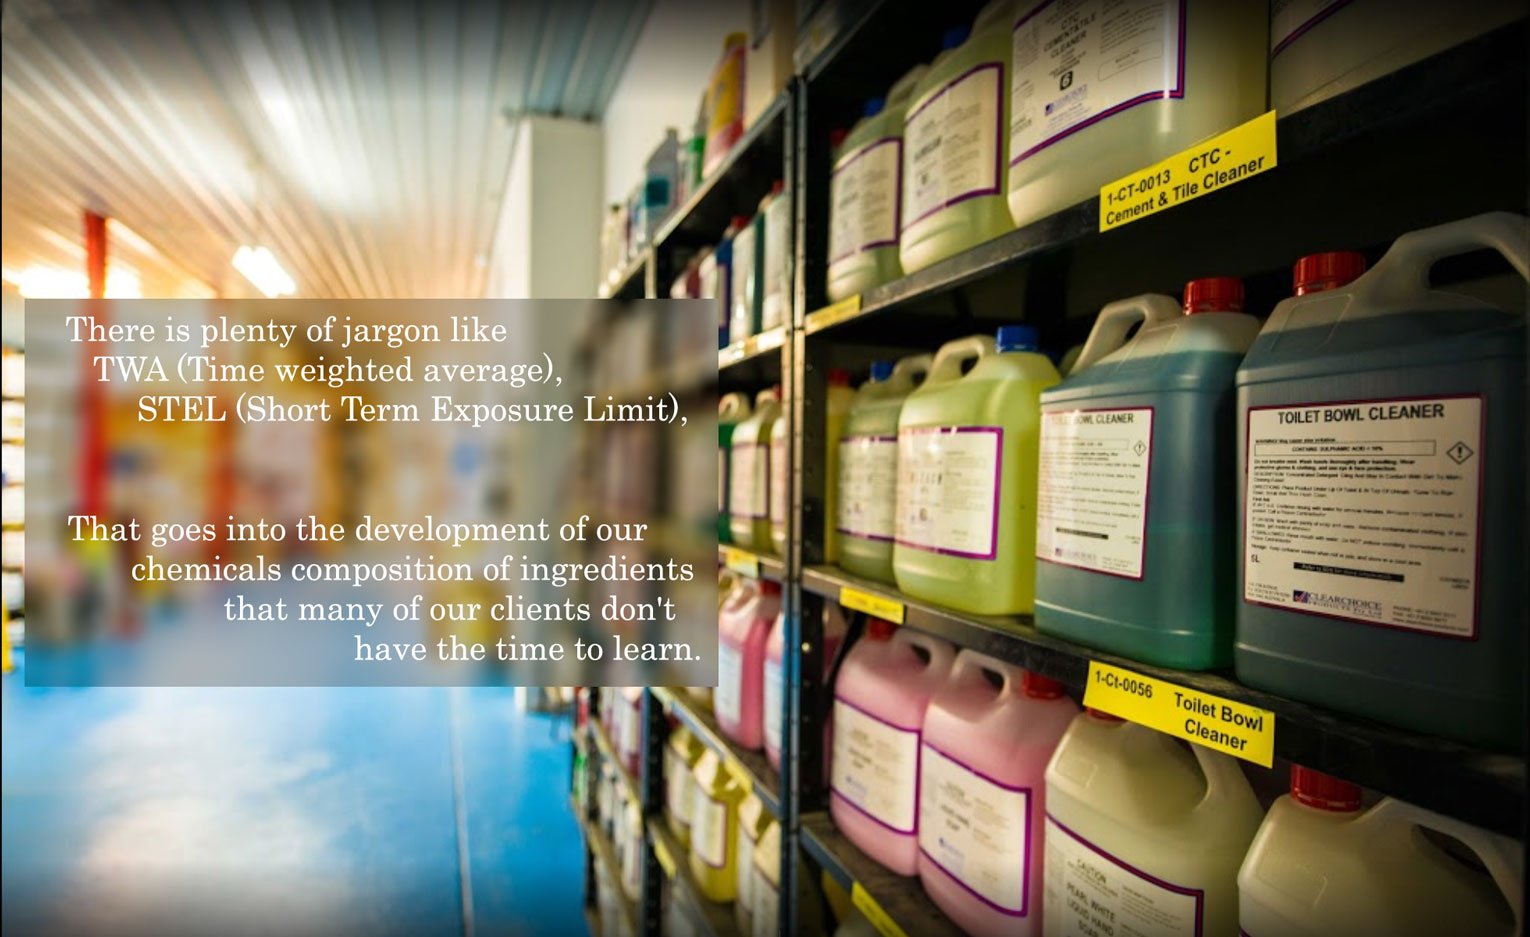 Clearchoice-Systainability-Photo